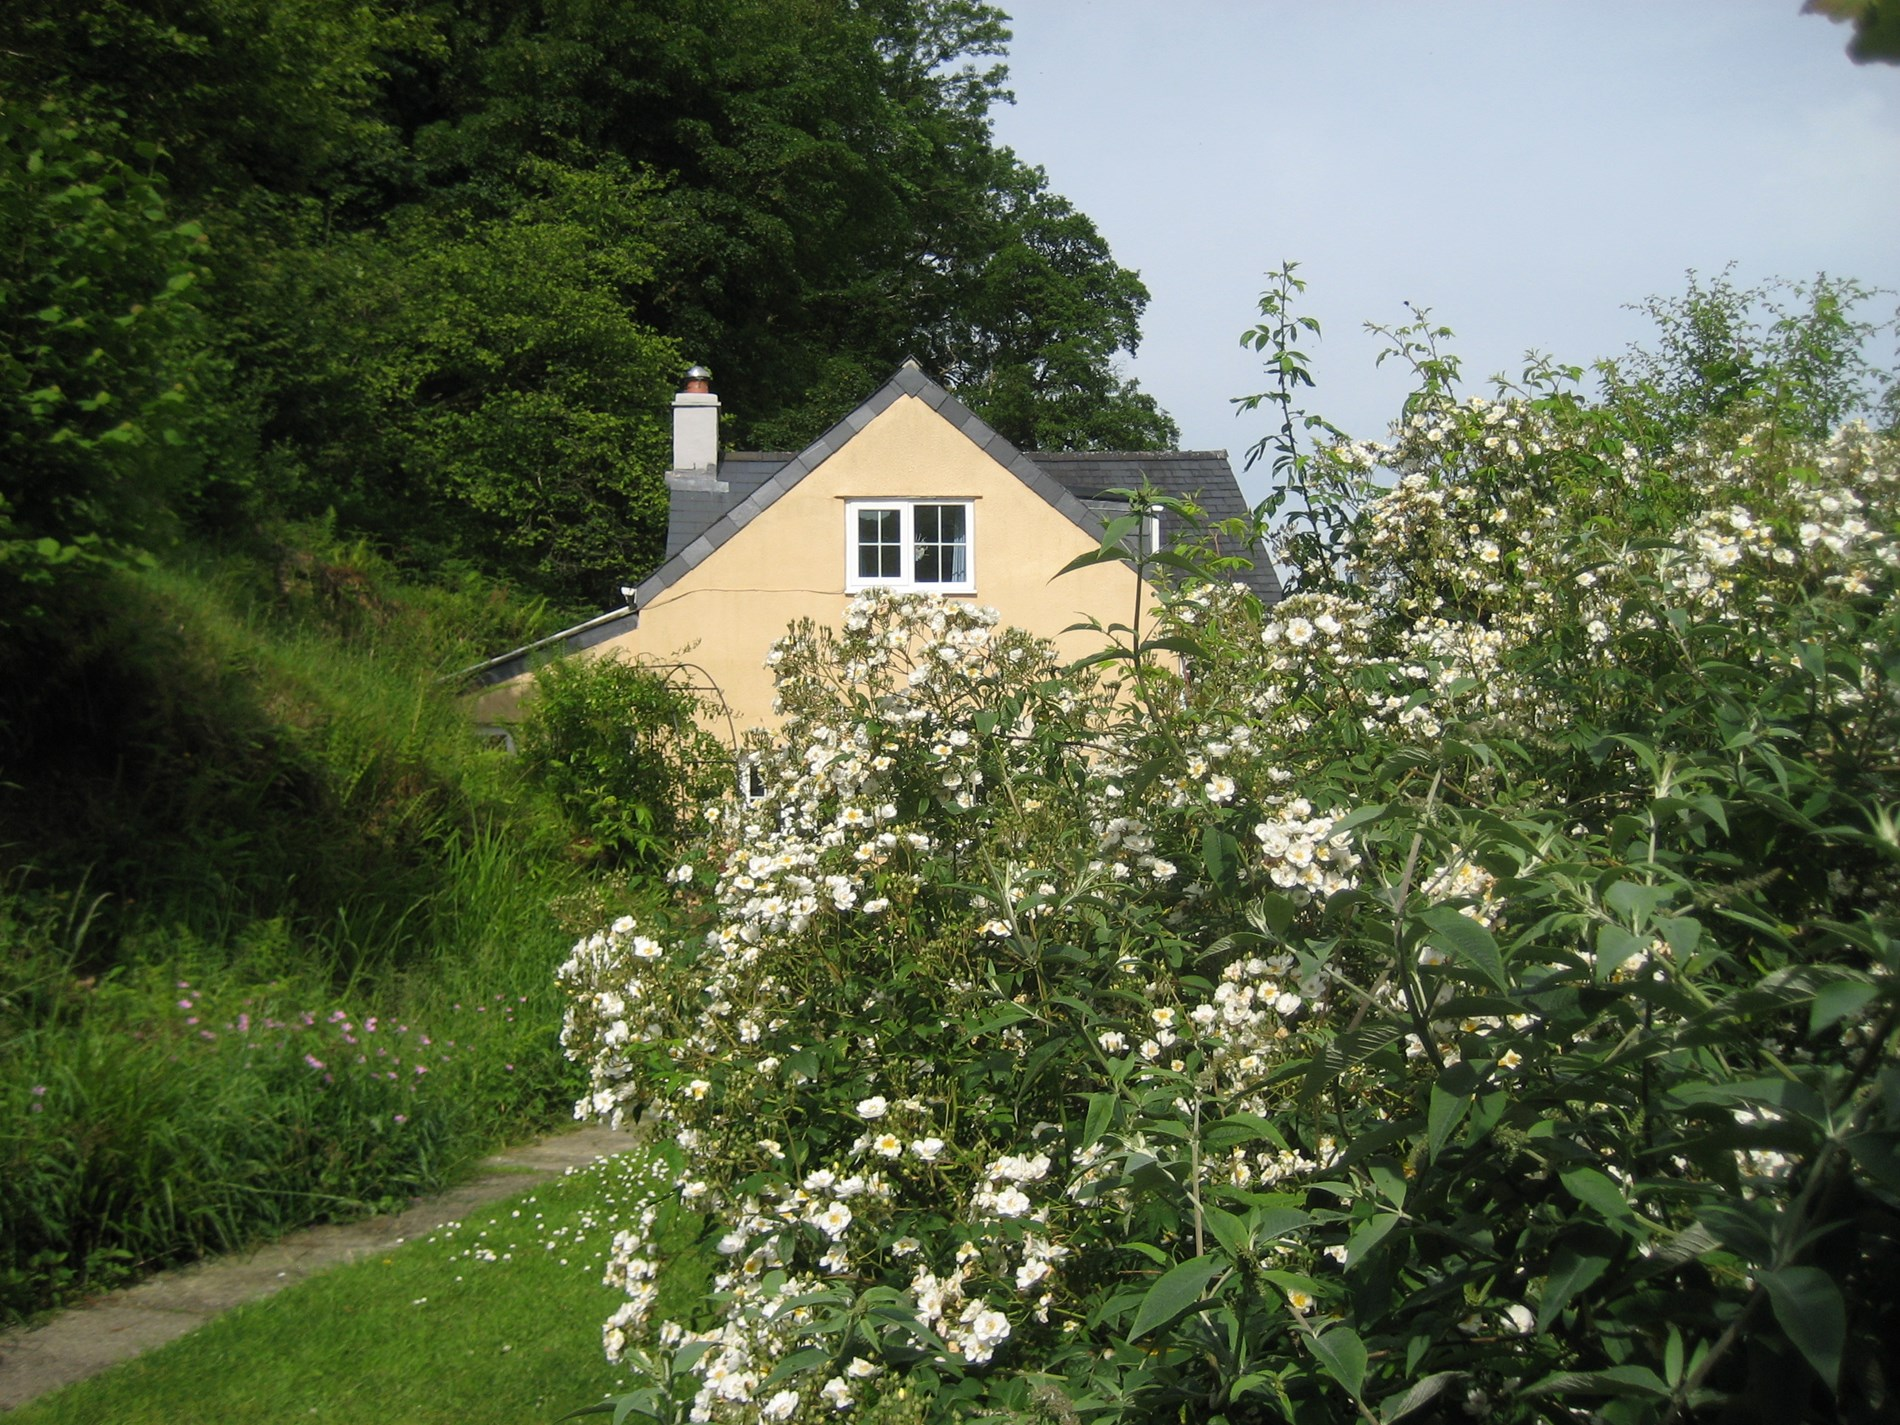 2 Bedroom Cottage in Fishguard, Mid Wales